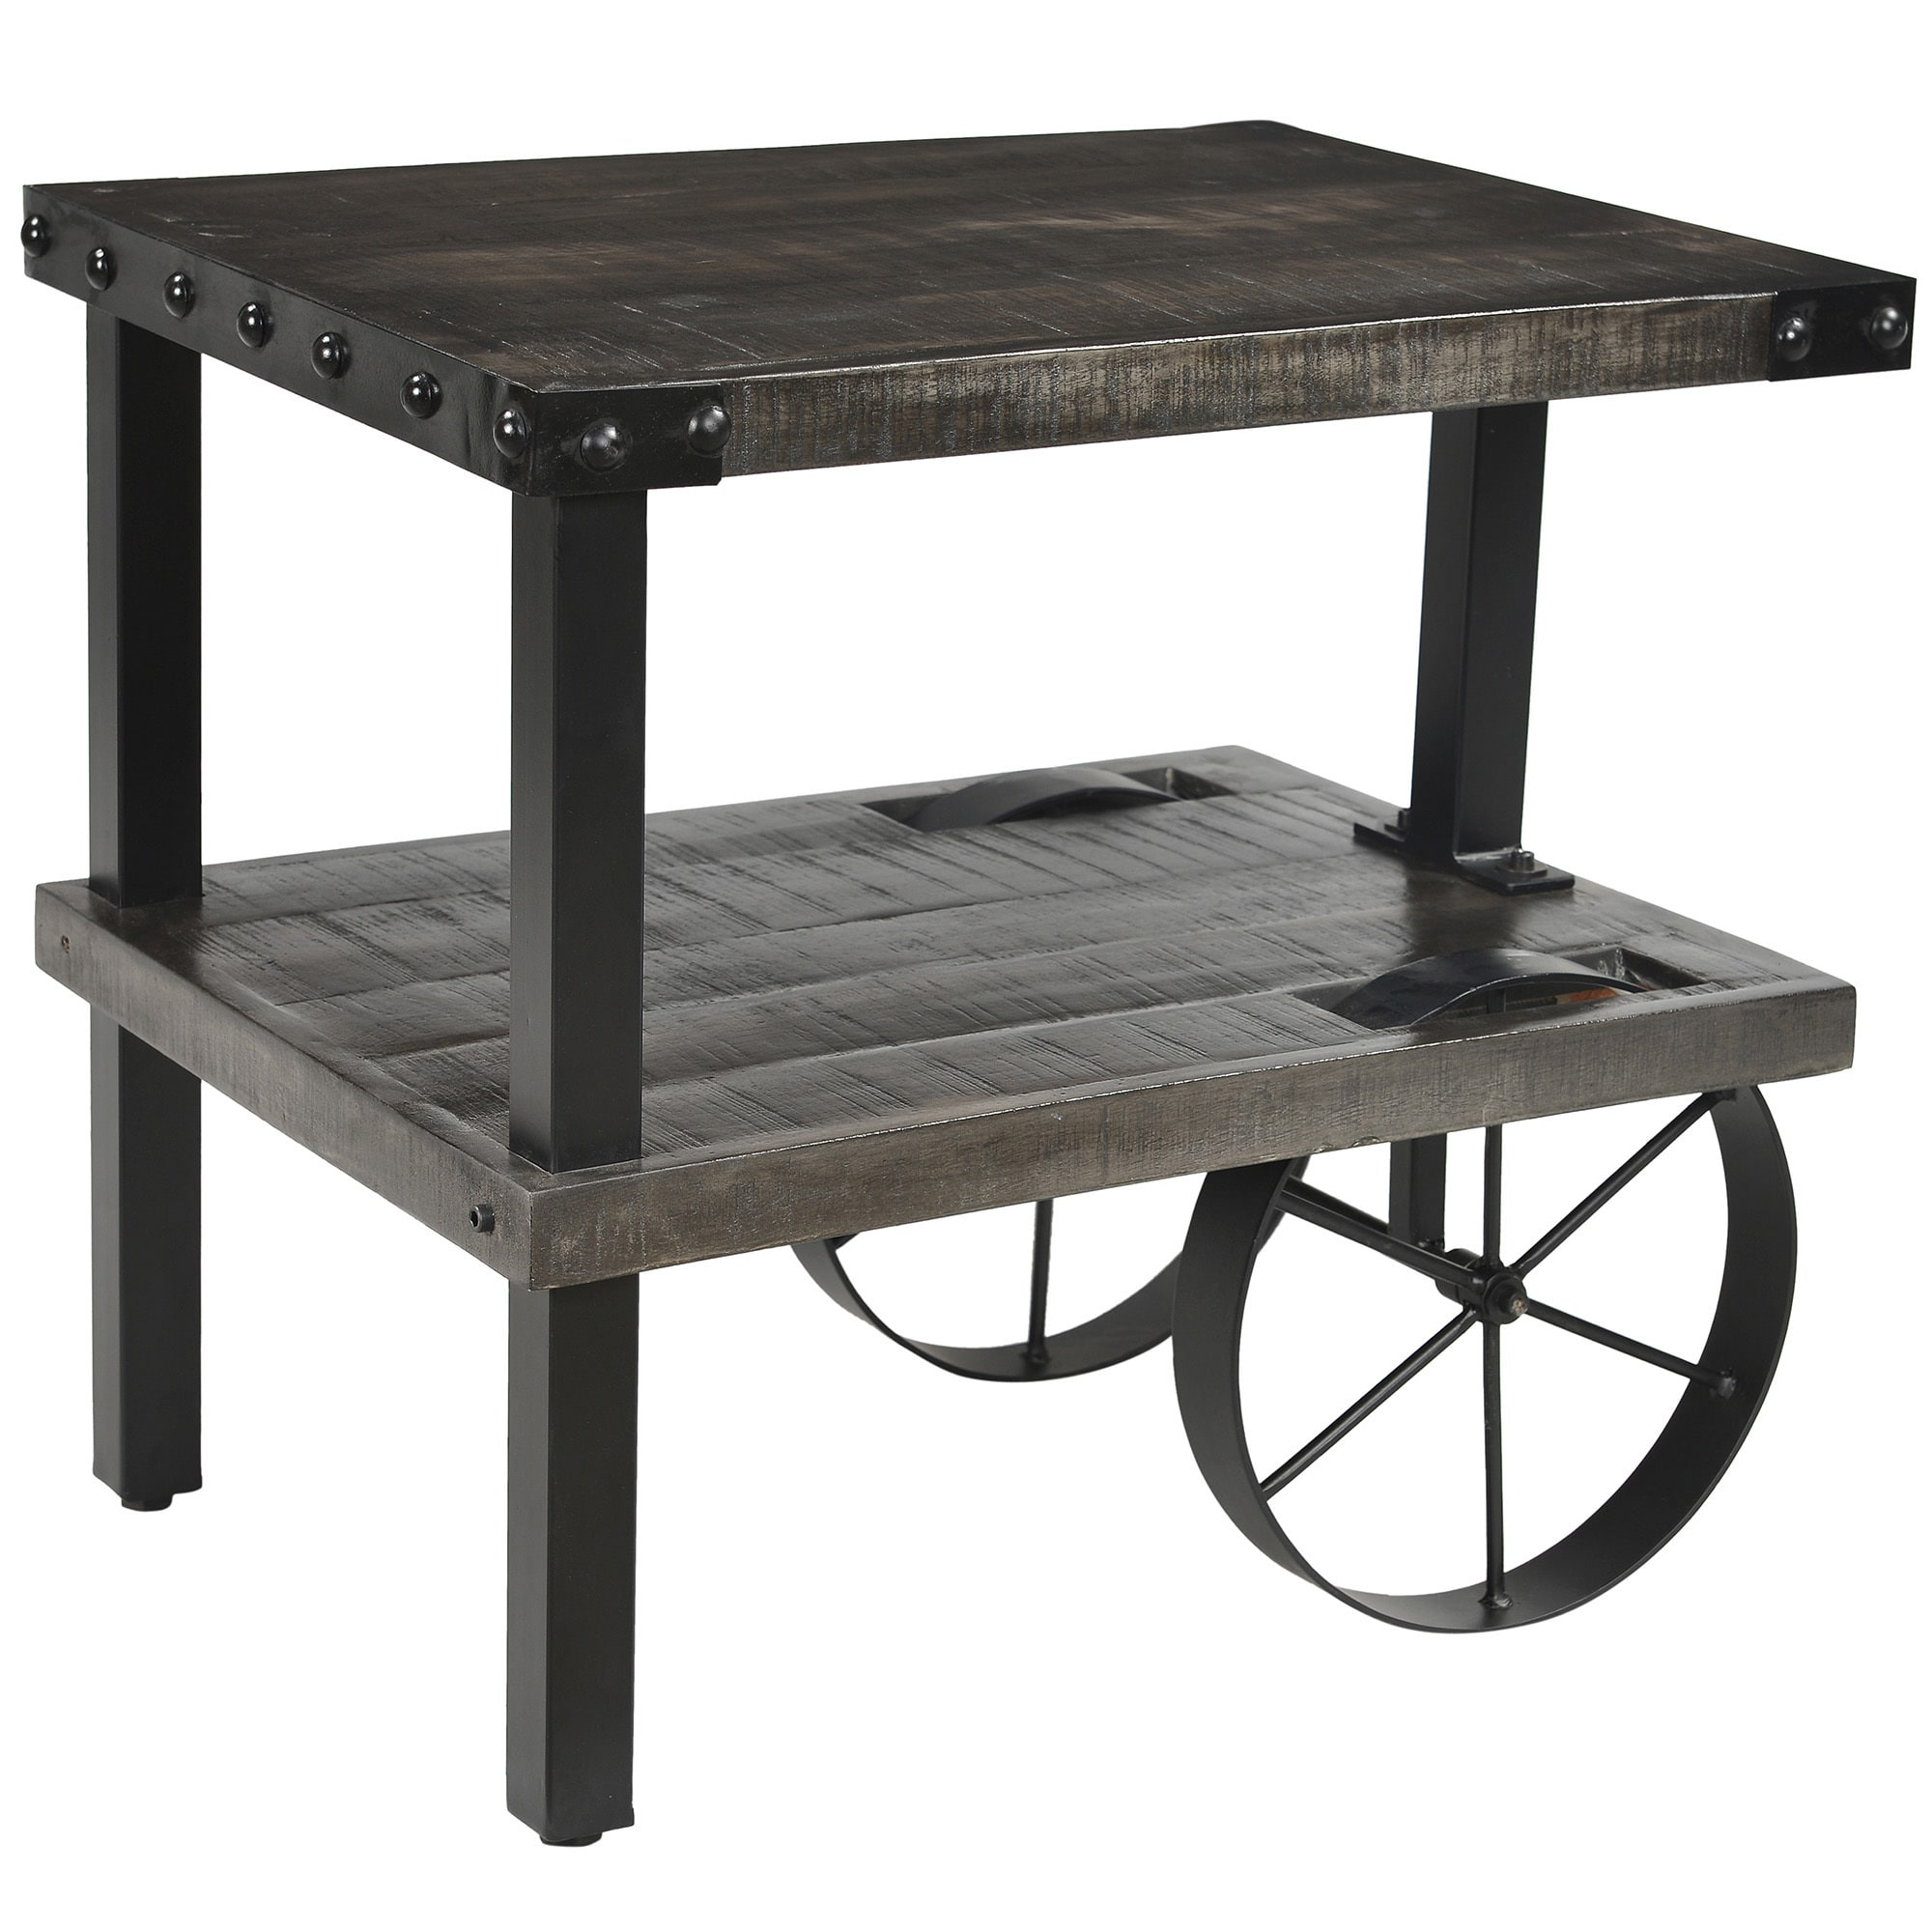 zahir solid wood and cast iron accent table distressed grey mango black free shipping today furniture home decor large ginger jar lamps room essentials queen comforter wicker ikea